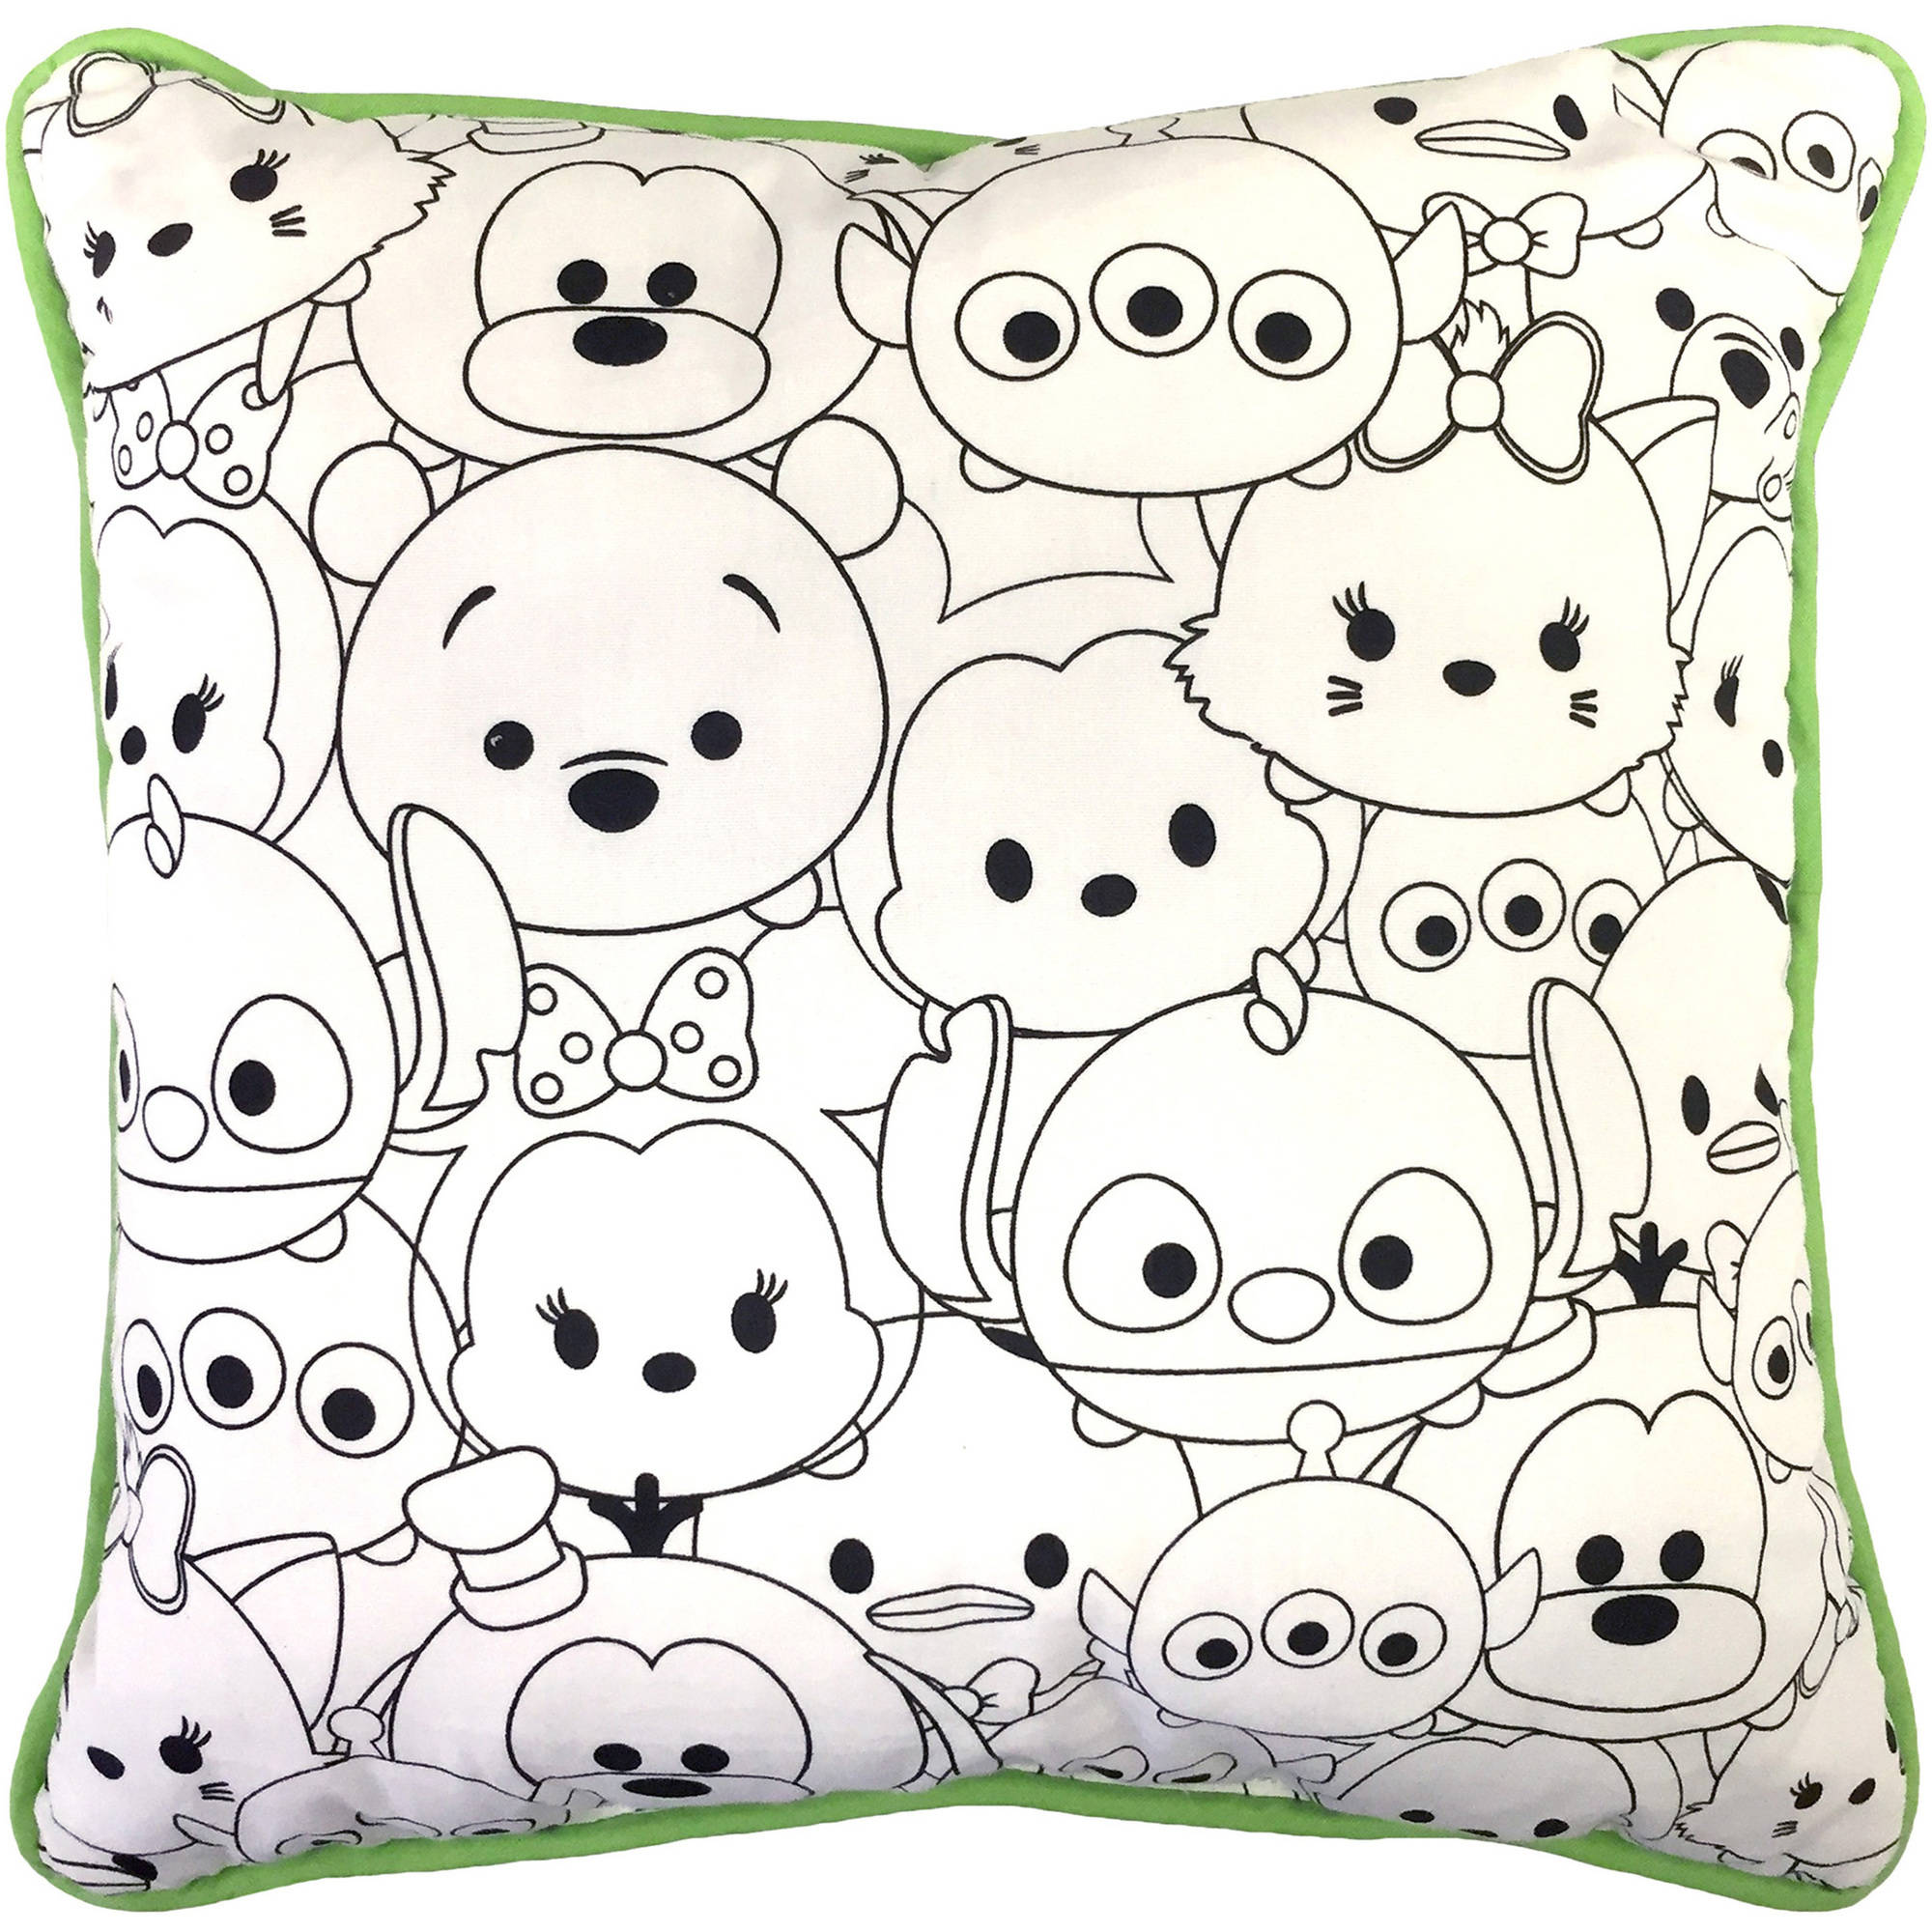 Tsum Tsum All Over Color Me Pillow